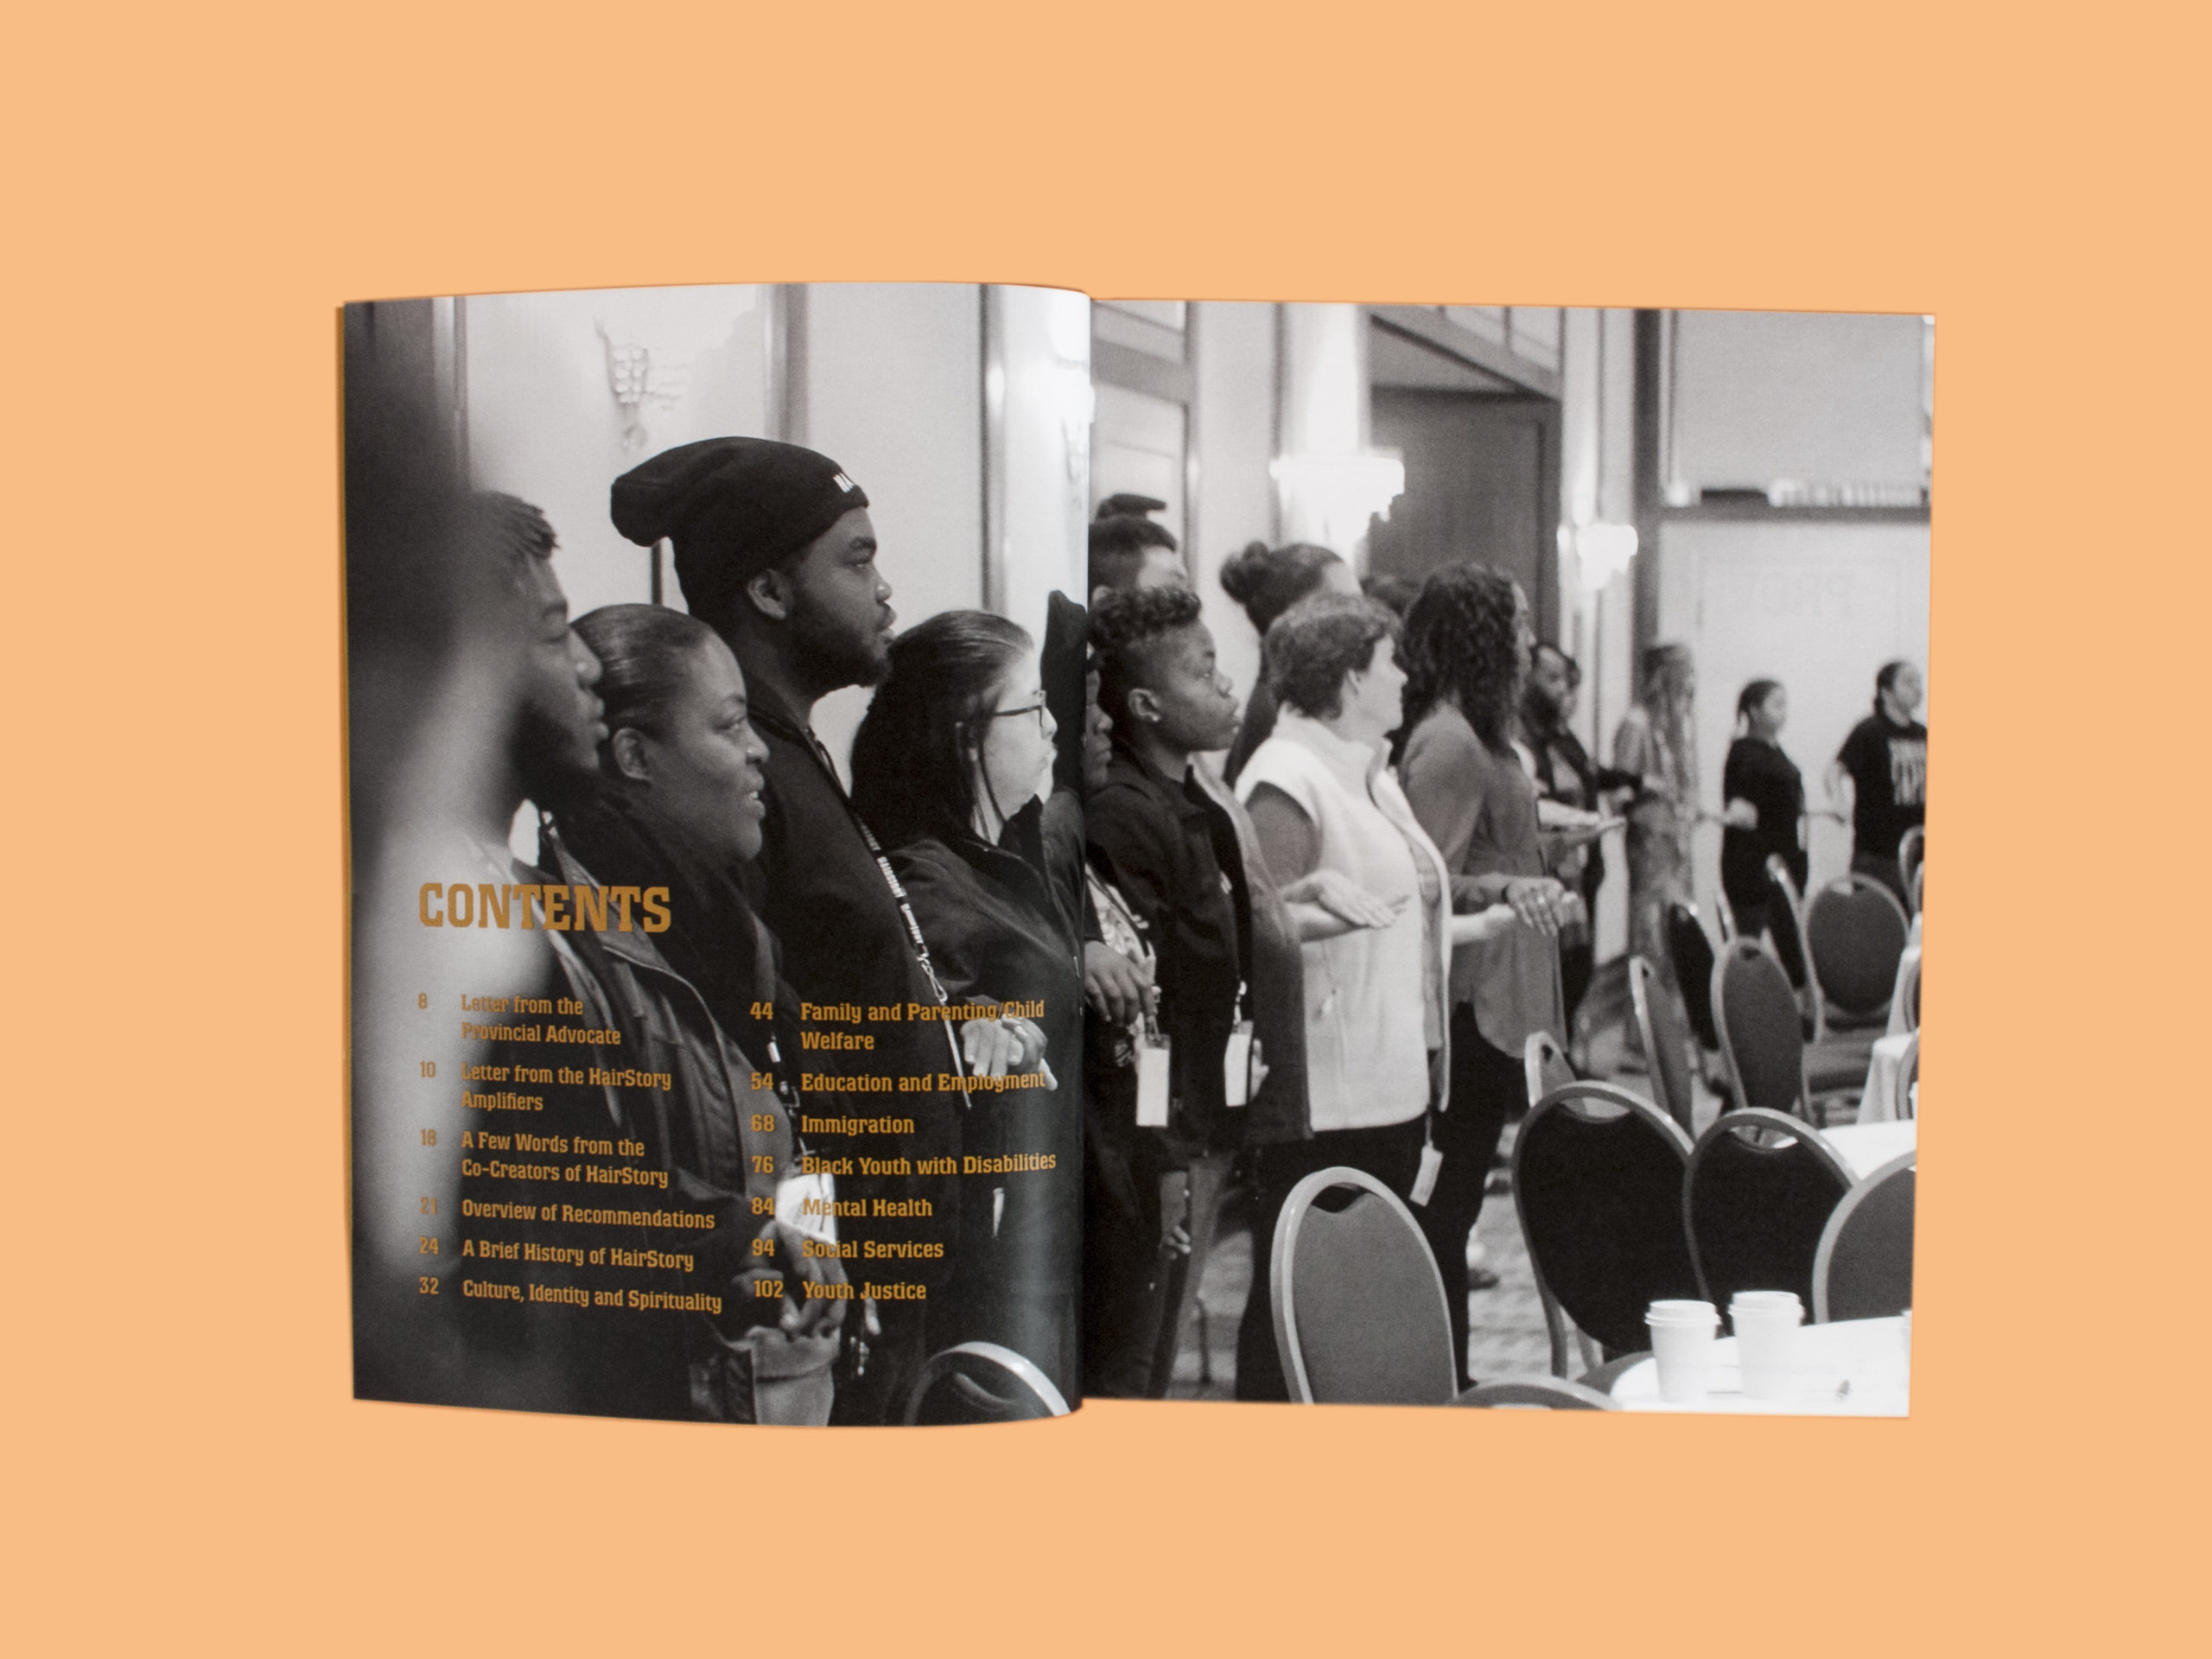 Photo of the contents spread from HairStory—Rooted. Behind the table of contents is a large photograph of many people standing in a circle, holding hands. Most of the people are Black youth, and they stand alongside elders and allies.